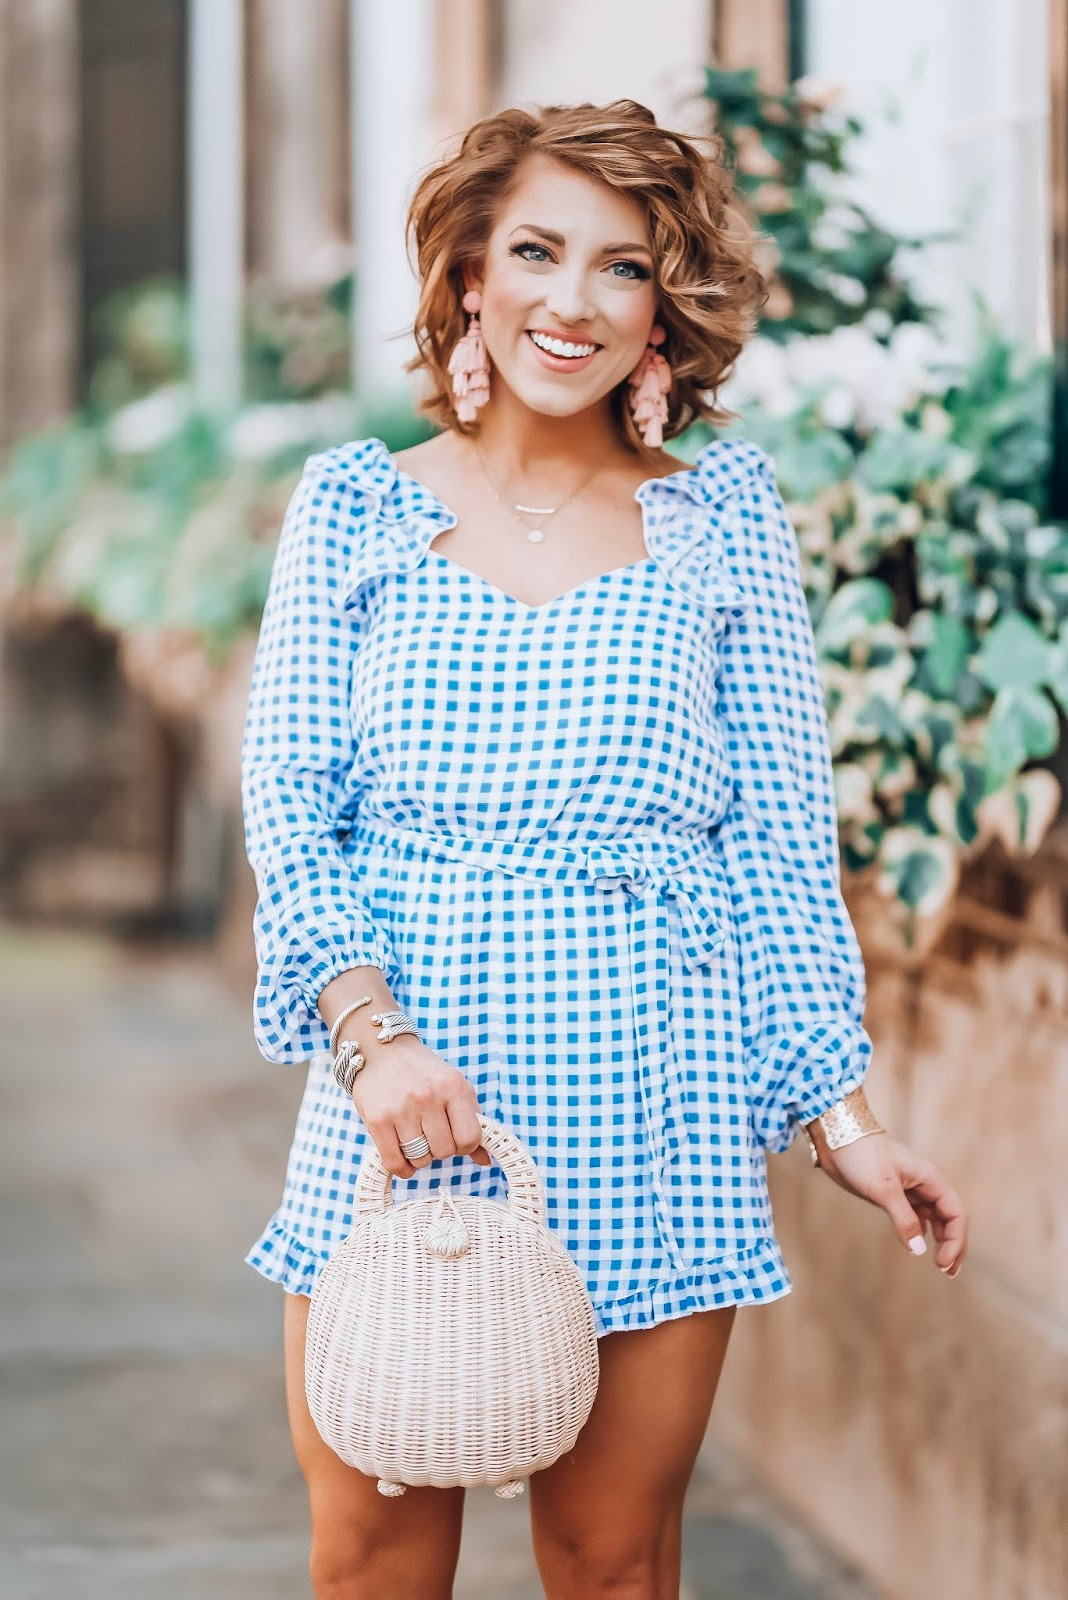 Blue and White Gingham Ruffle Romper - Something Delightful Blog #springstyle #gingham #blueandwhite #charlestonsc #summerstyle